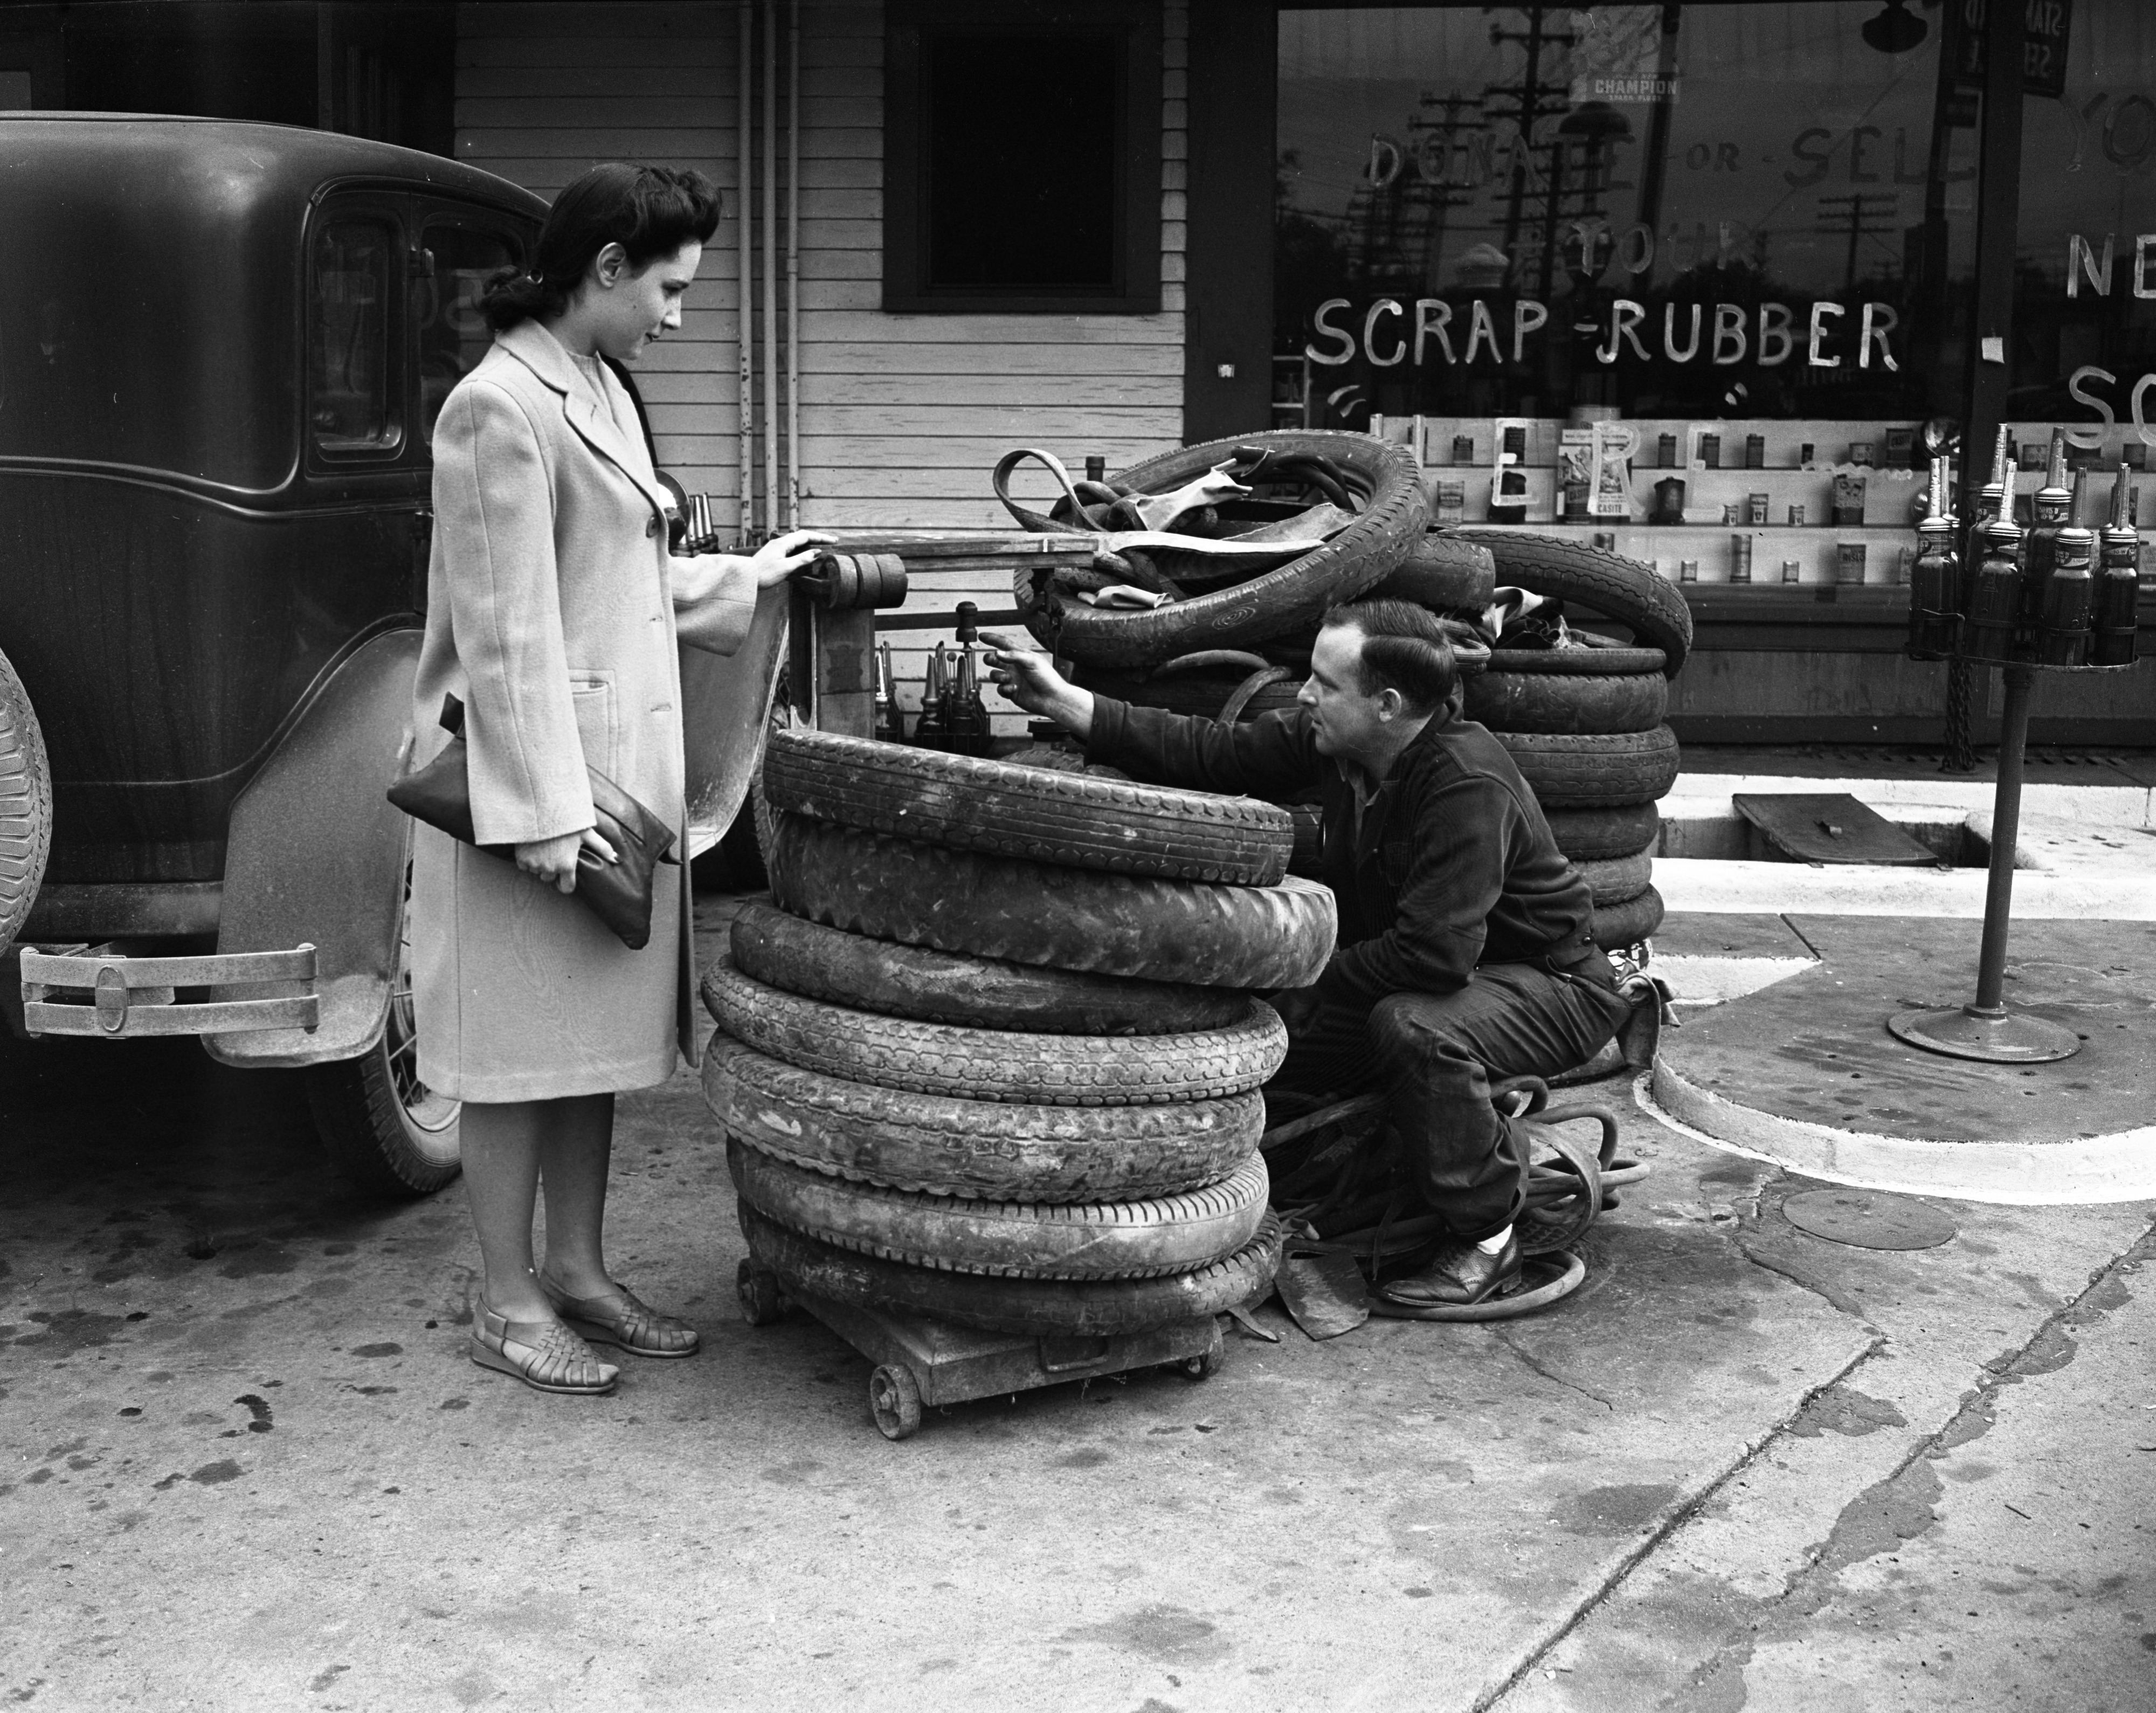 Mary Meyers and Harold Harris inspect a pile of scrap rubber for collection, June 1942 image